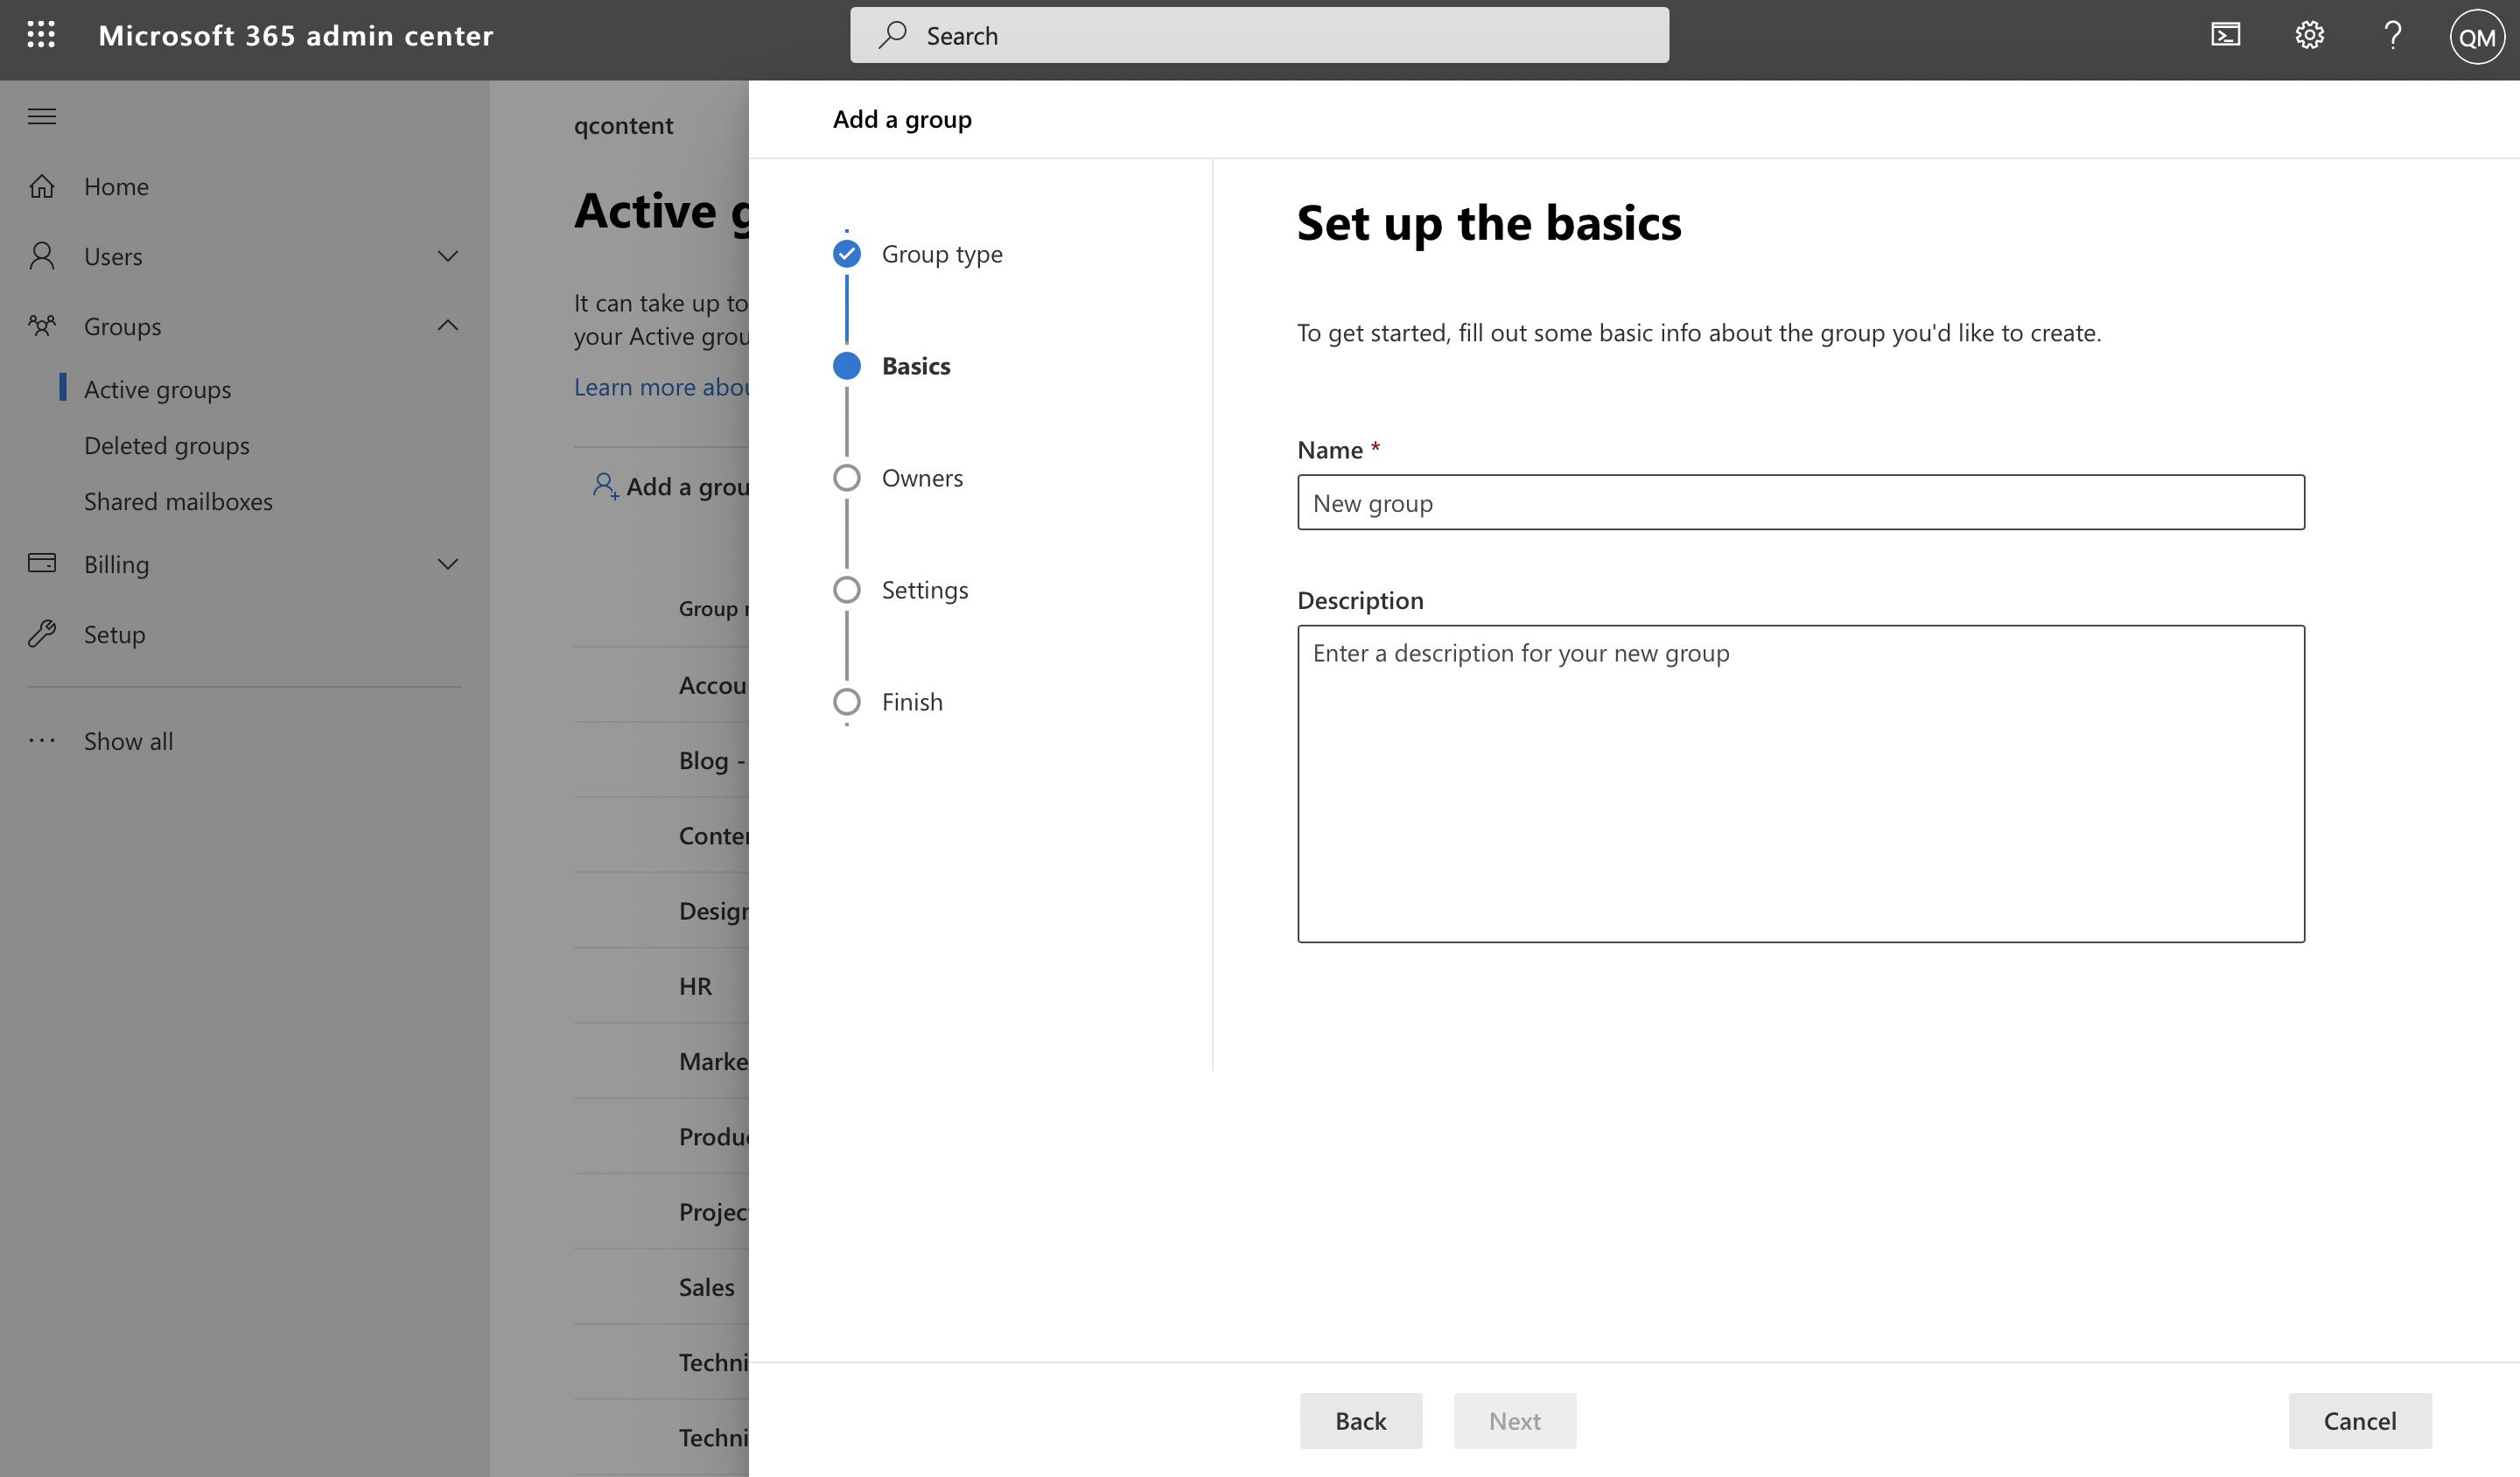 Screenshot of user setting group name and description in Microsoft admin center